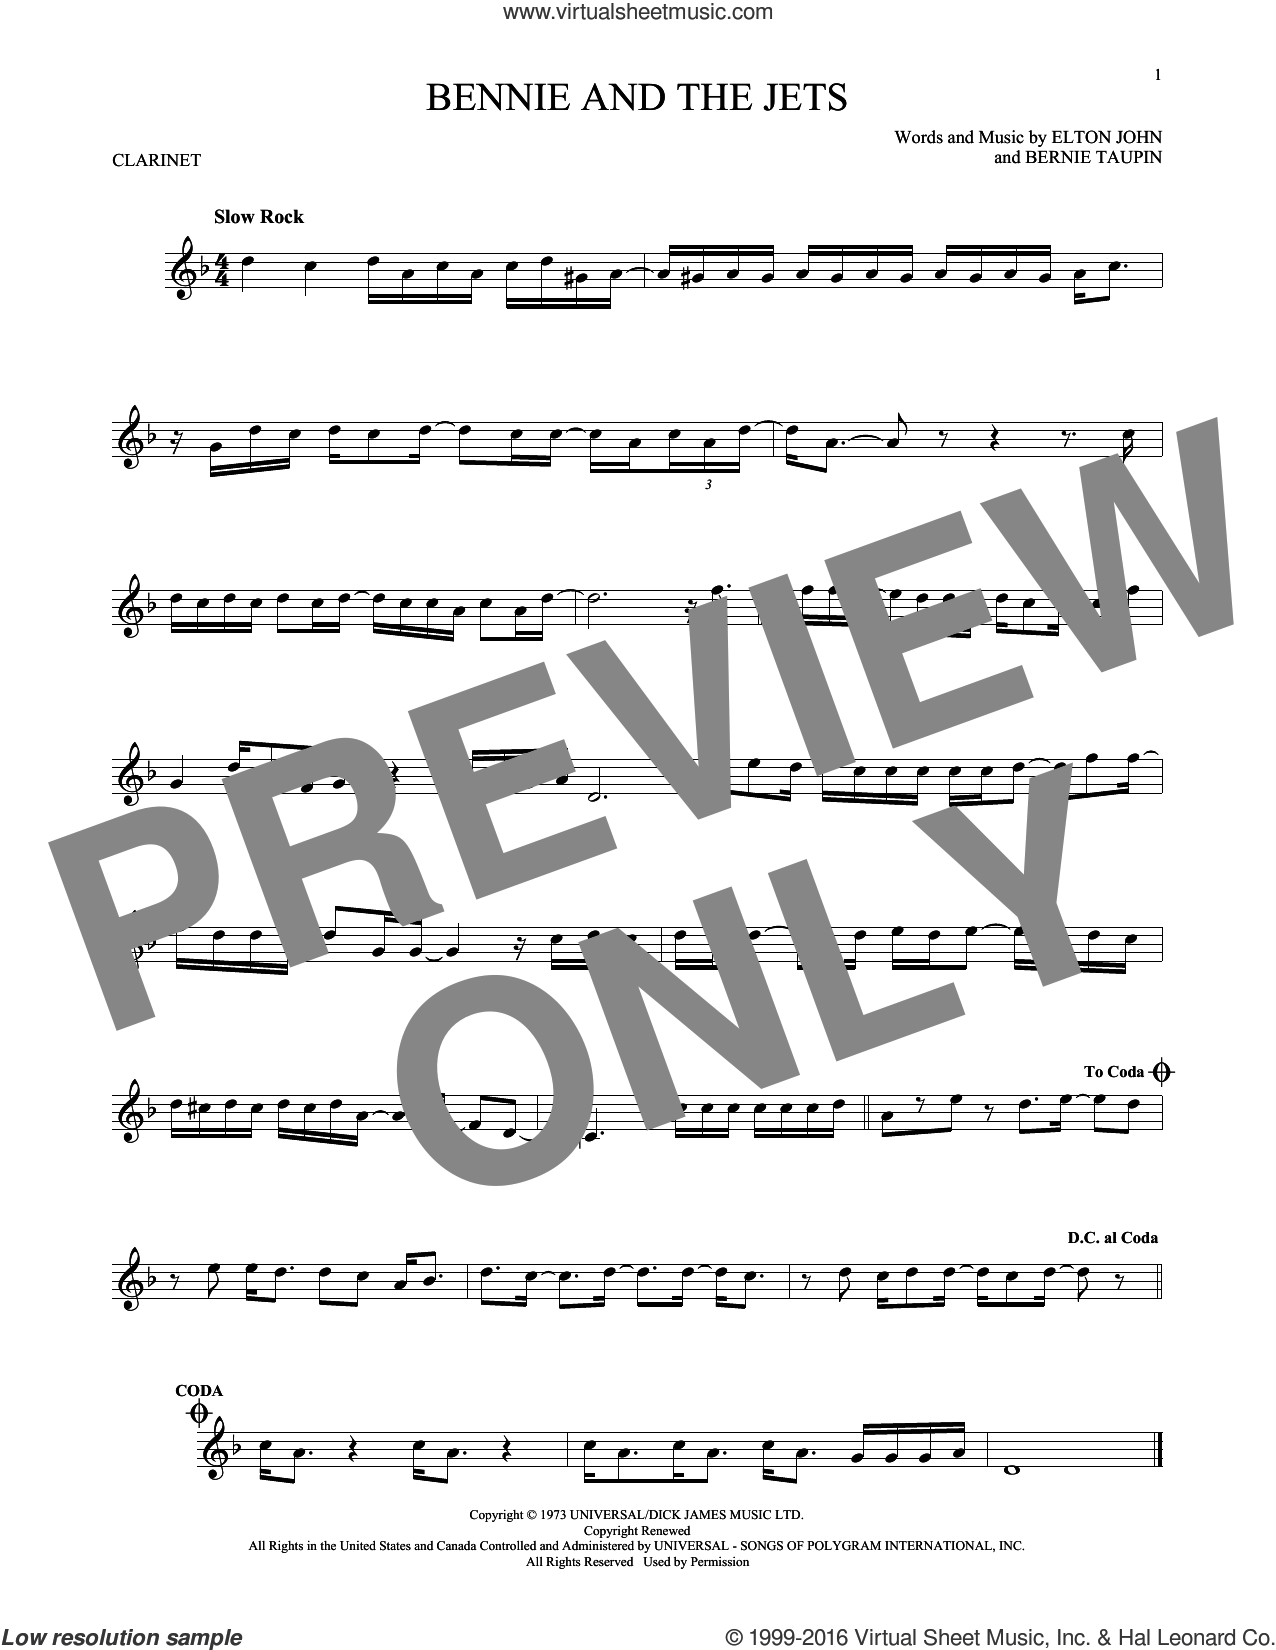 Bennie And The Jets sheet music for clarinet solo by Elton John and Bernie Taupin, intermediate